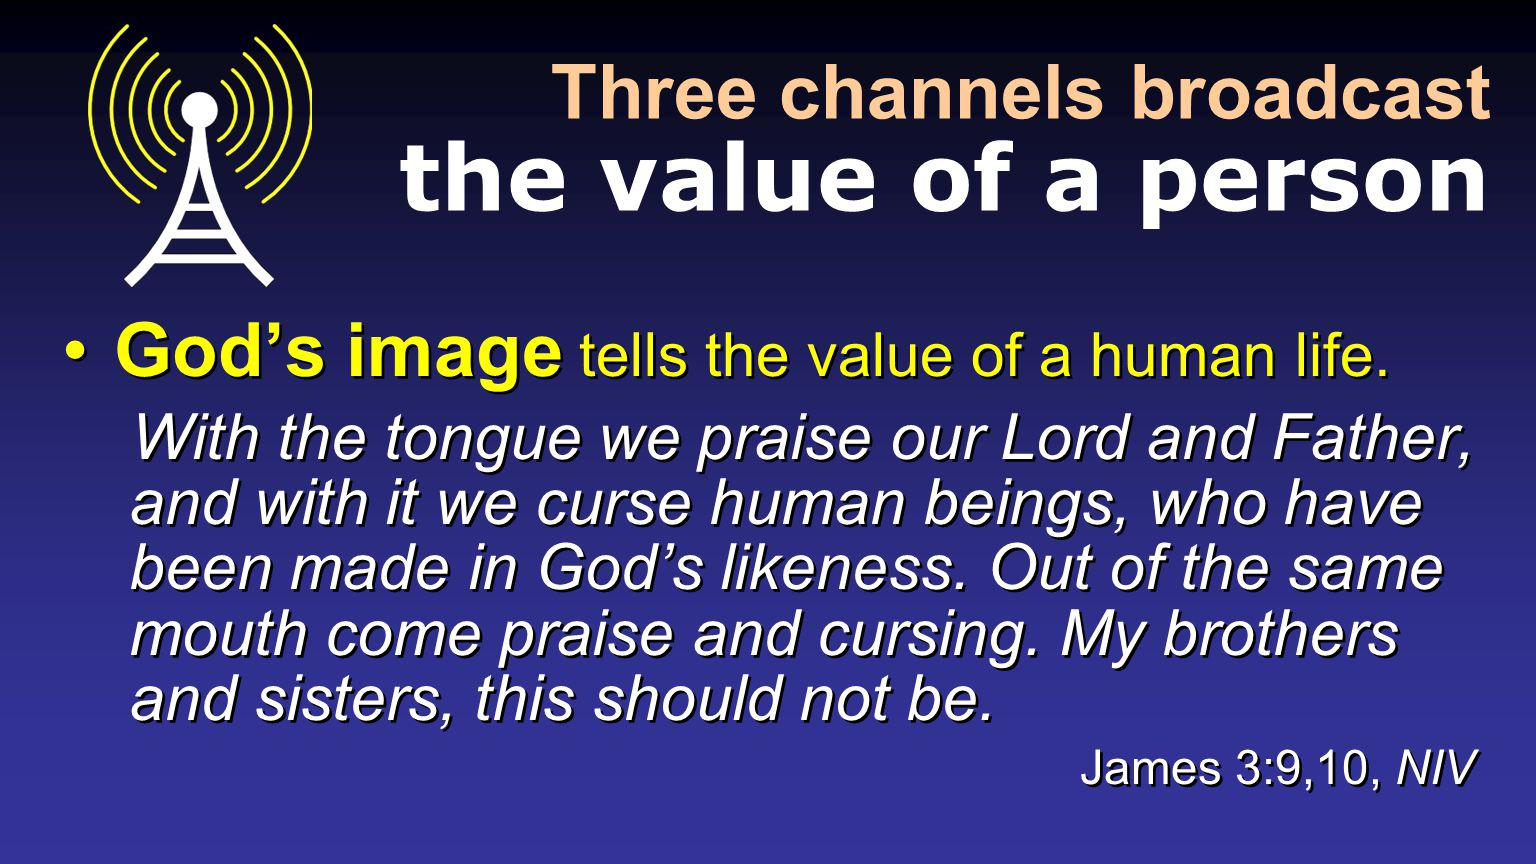 Three channels broadcast the value of a person God's image tells the value of a human life.